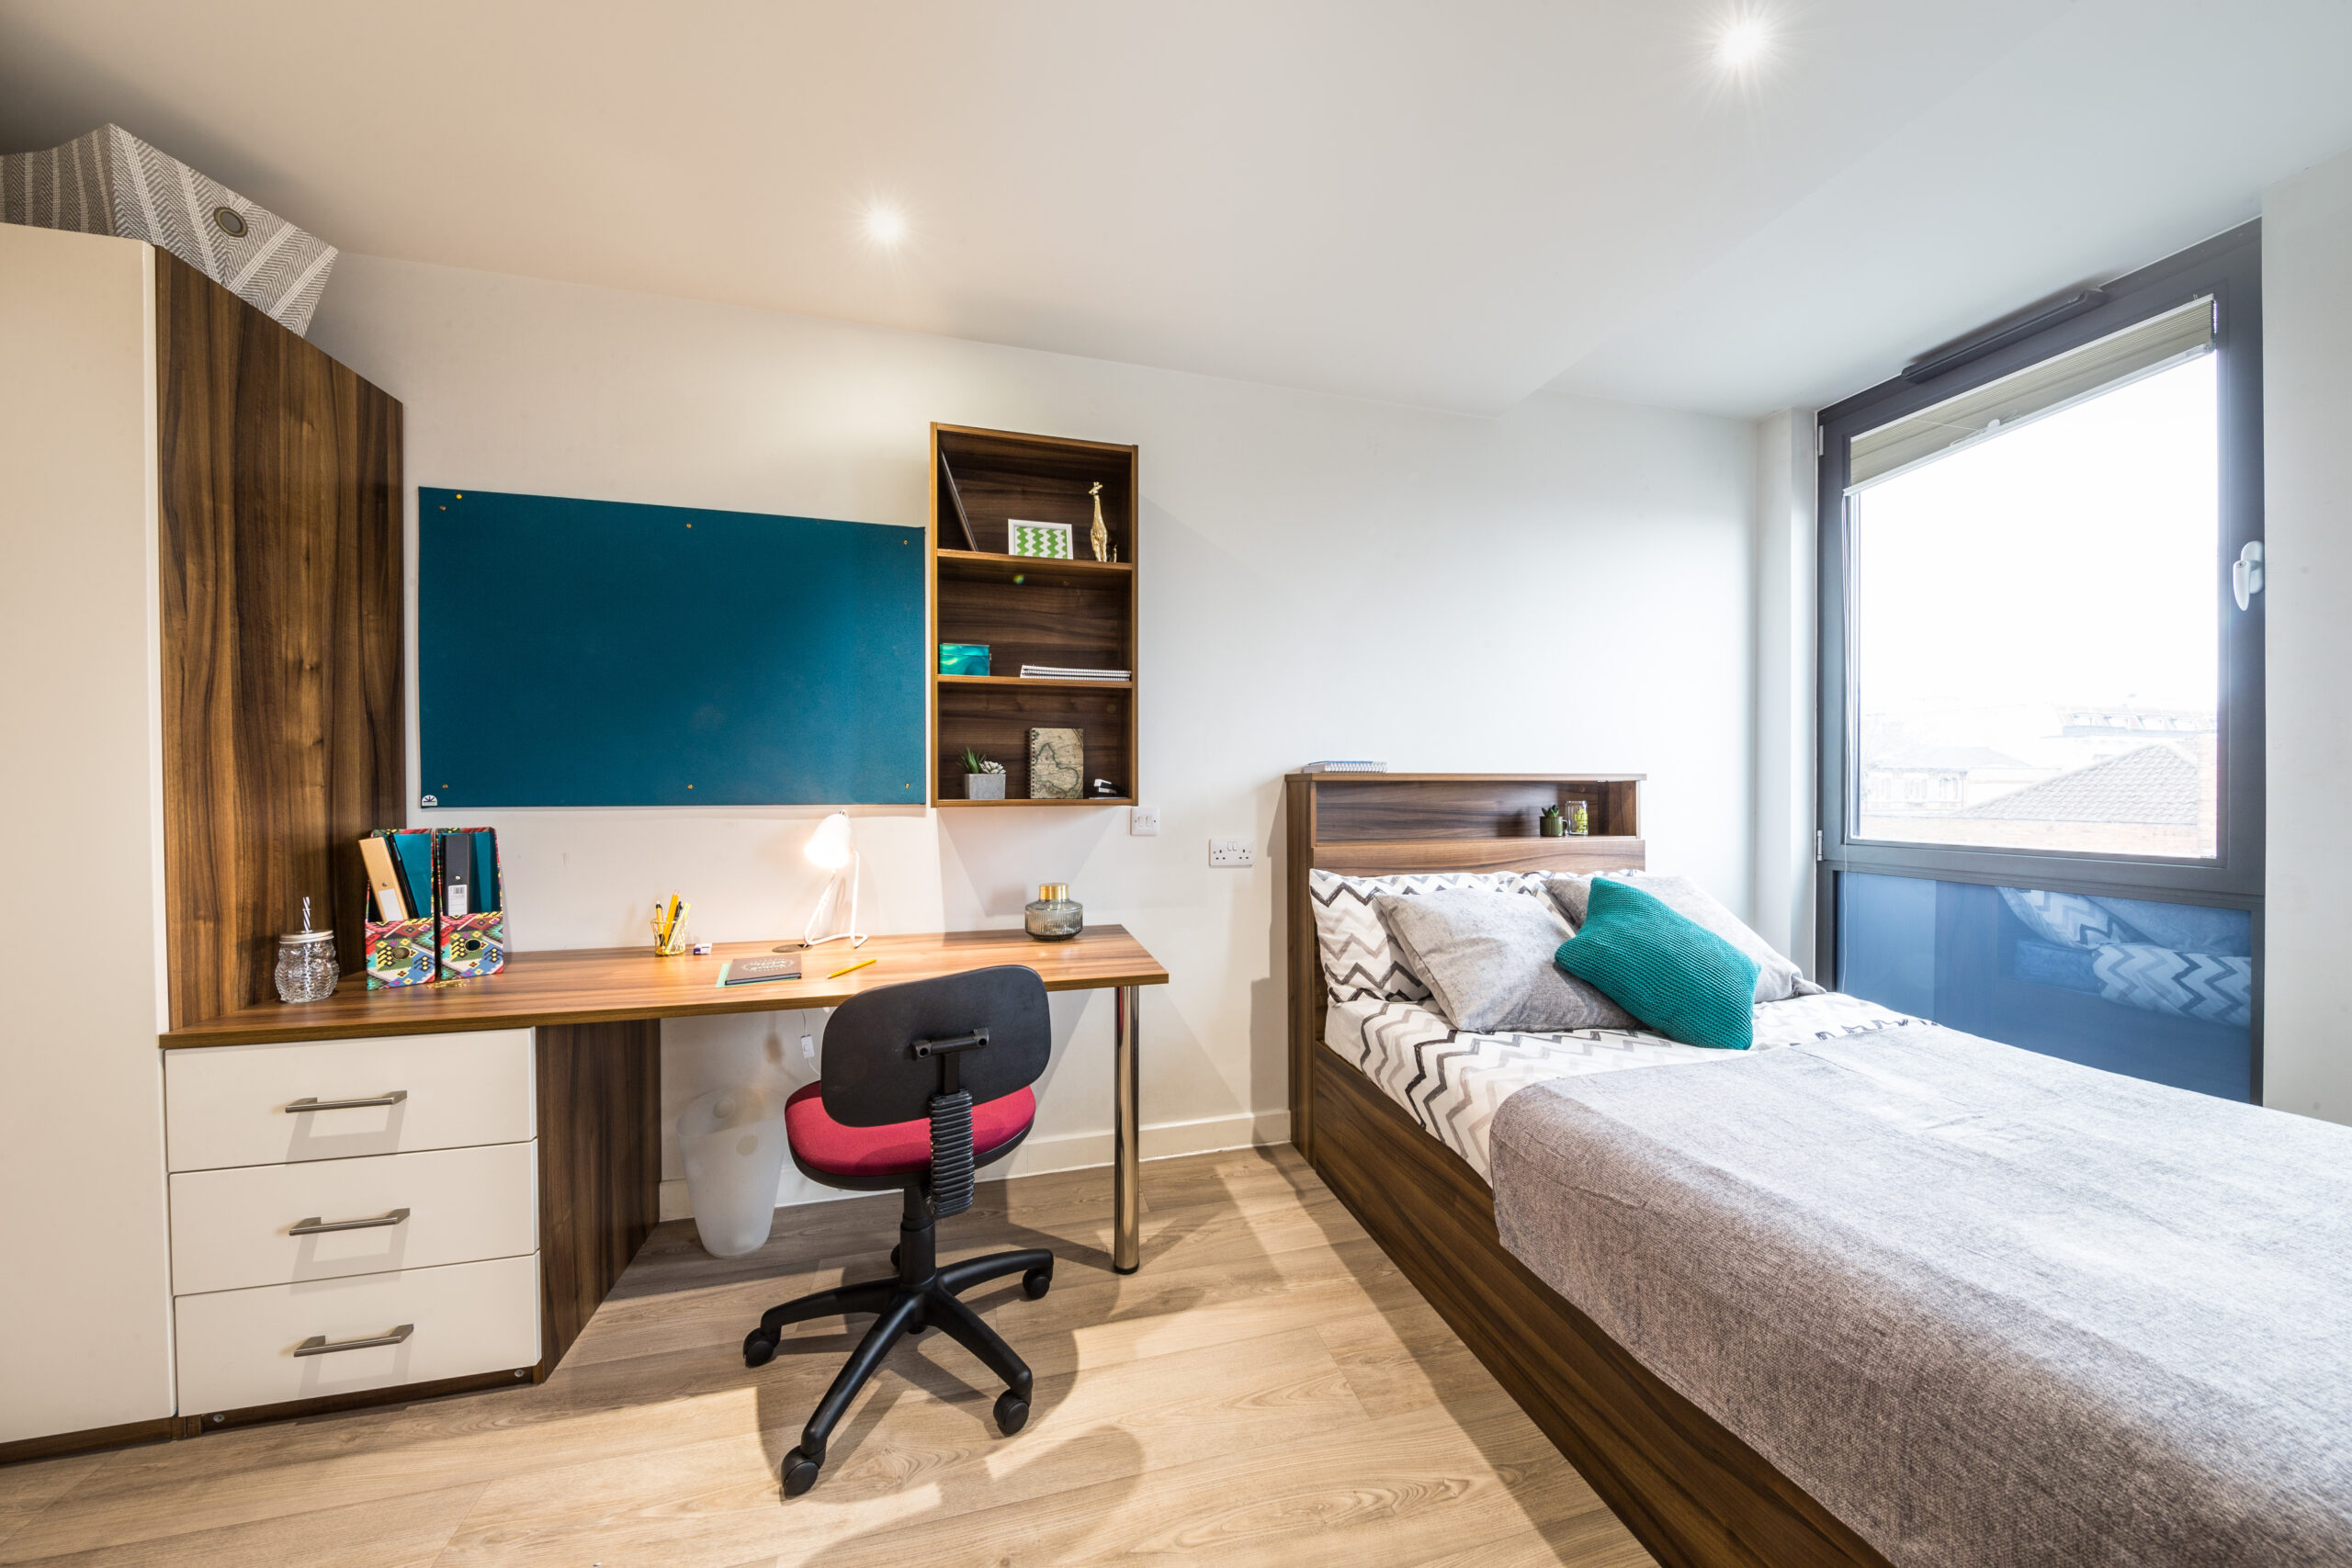 Comprehensive Guide on Finding Student Accommodation Near Your University Campus